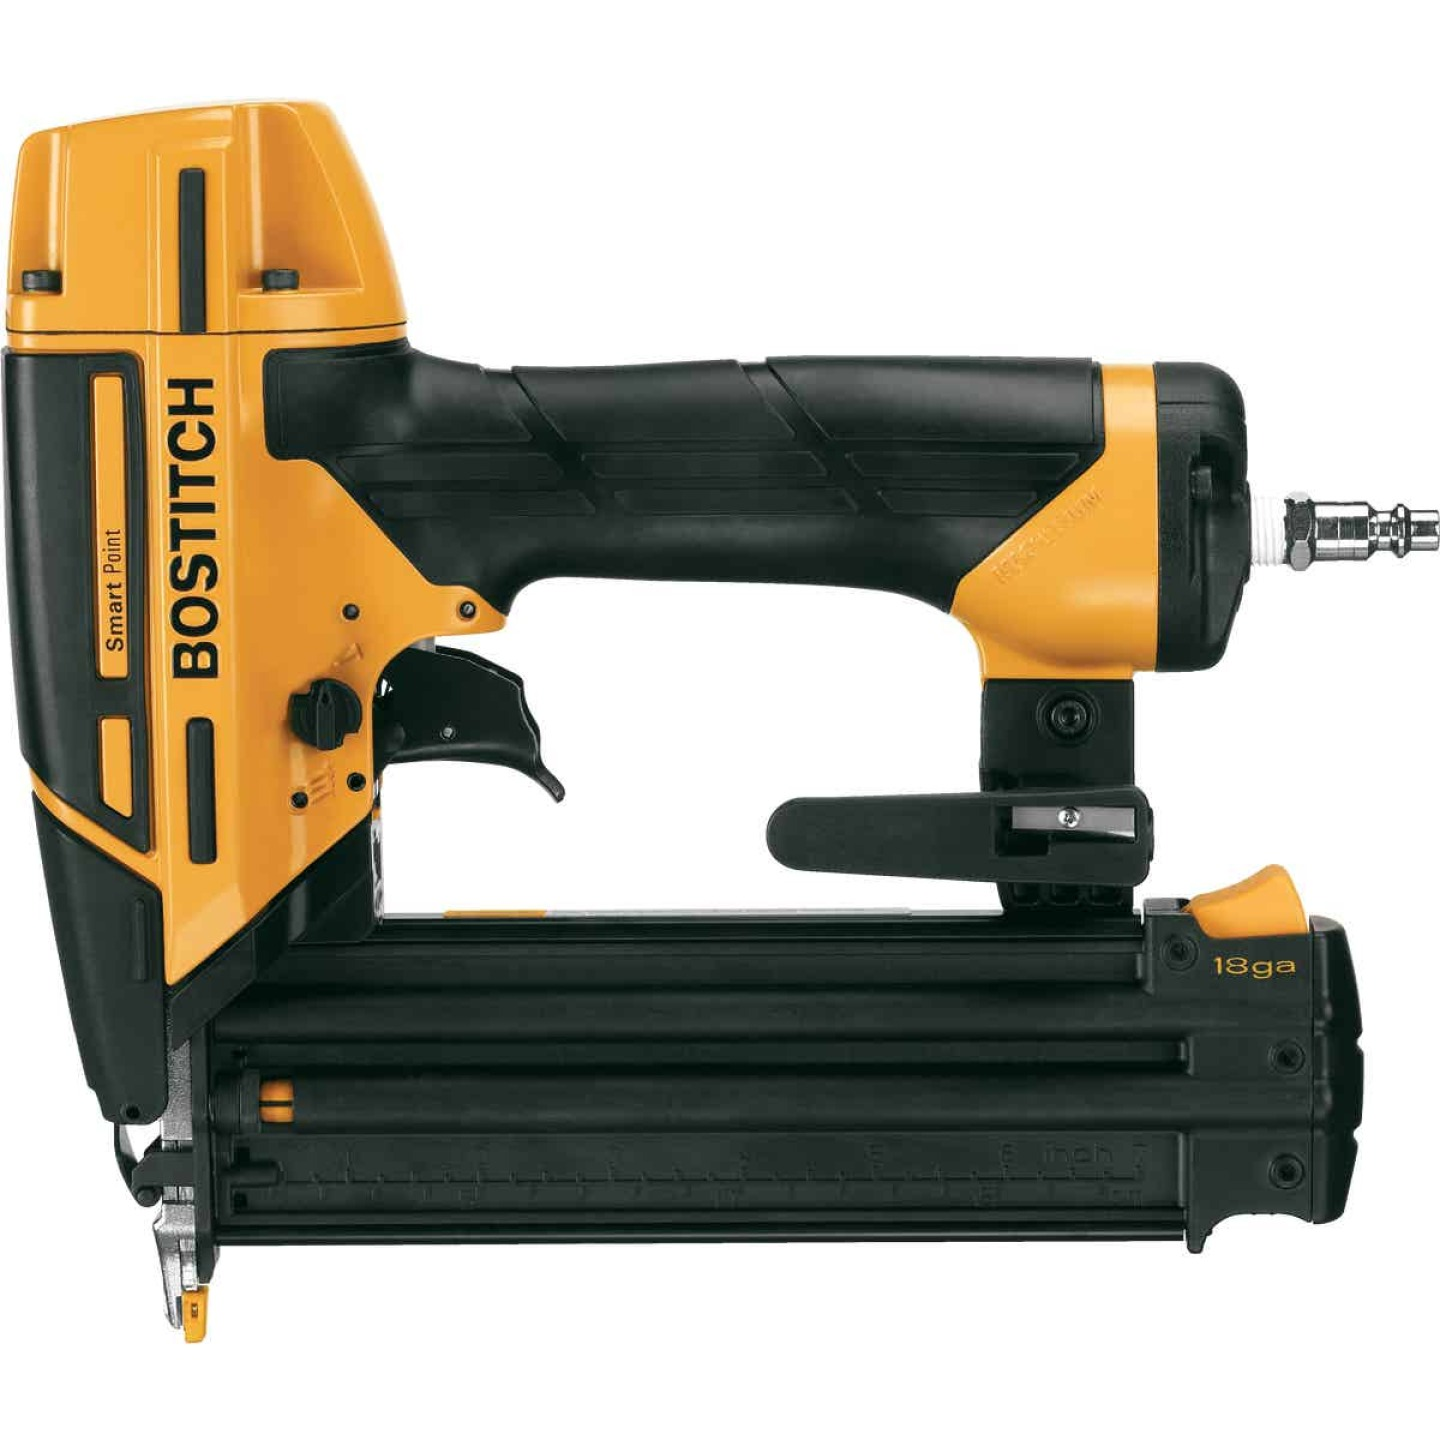 Bostitch Smart Point 18-Gauge 2-1/8 In. Brad Nailer Kit Image 1